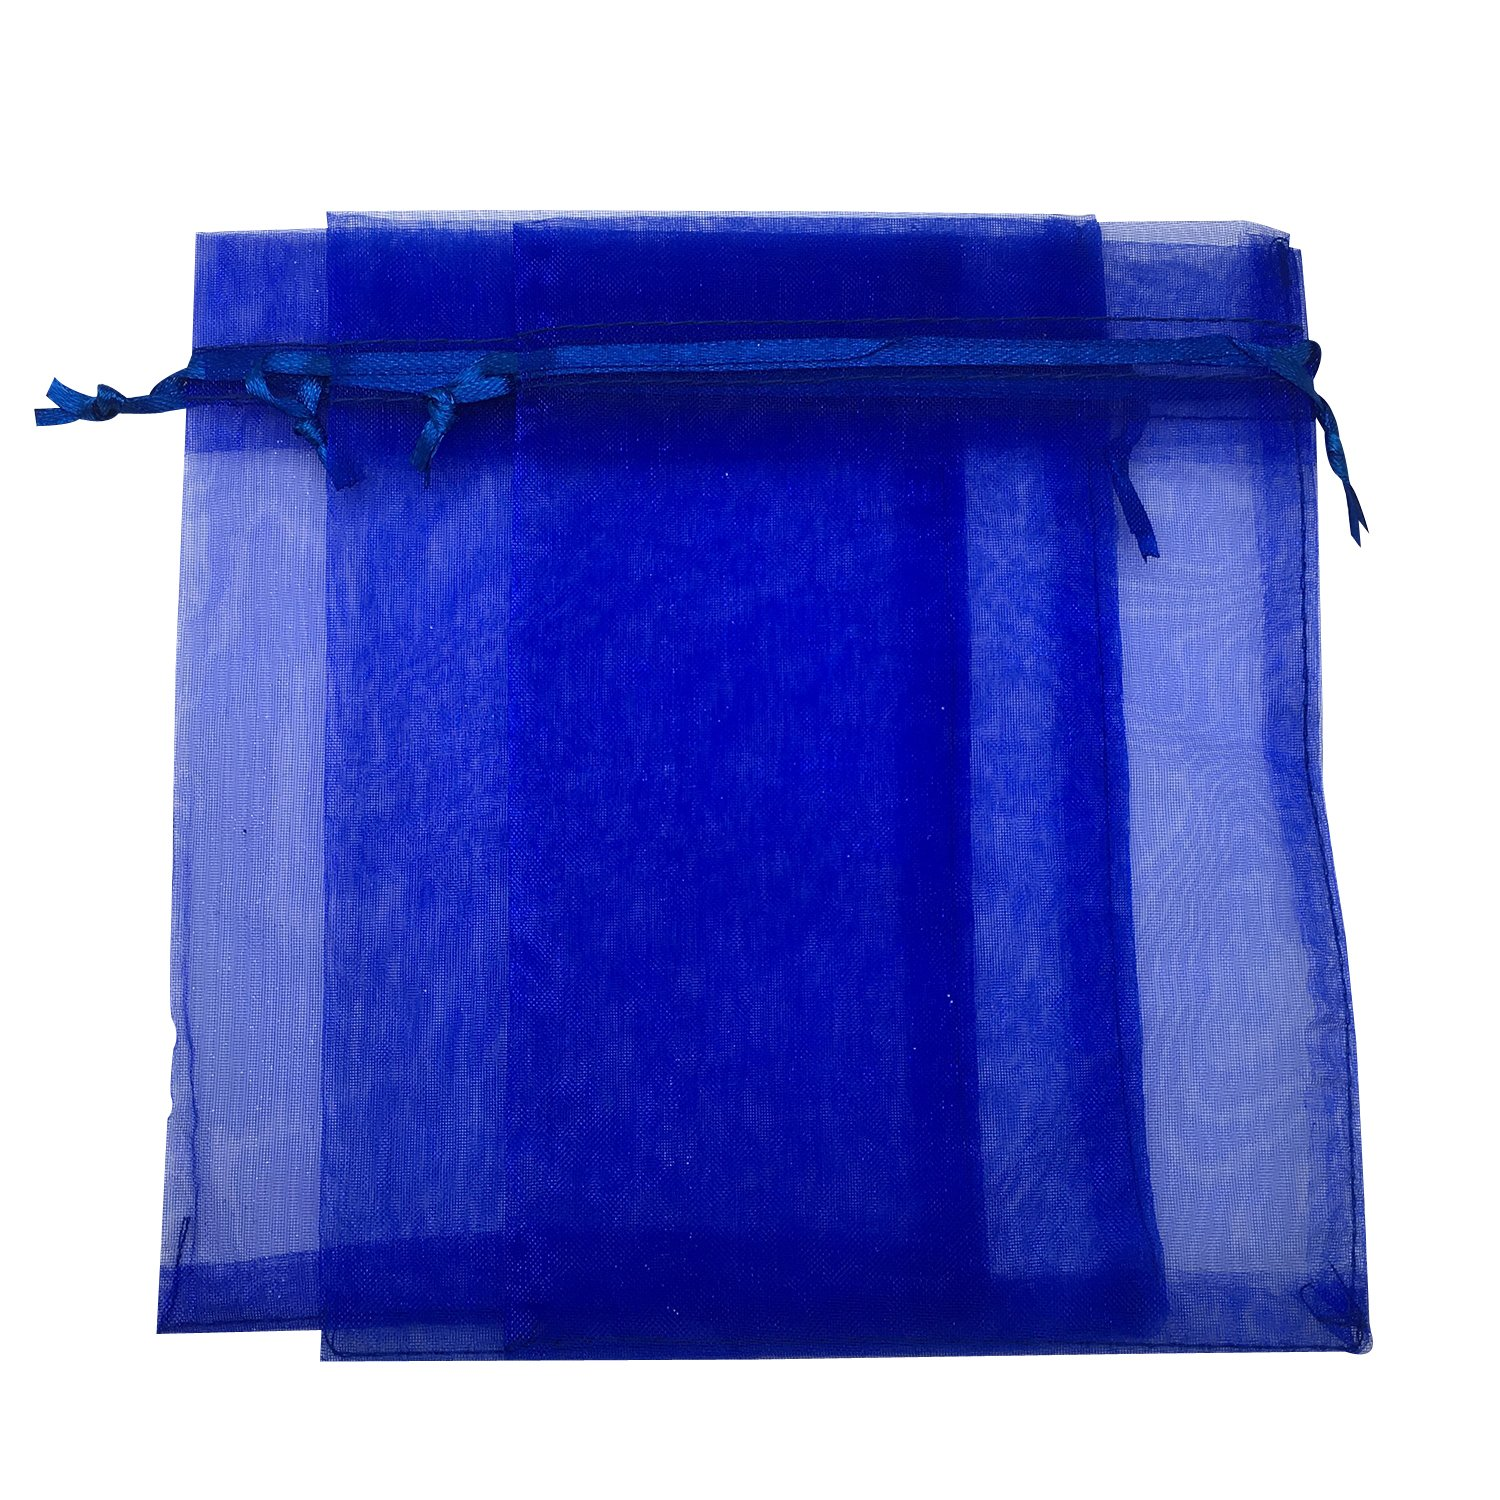 Amazon.com: sungulf 100pcs Organza Pouch Bag Drawstring 5 x ...